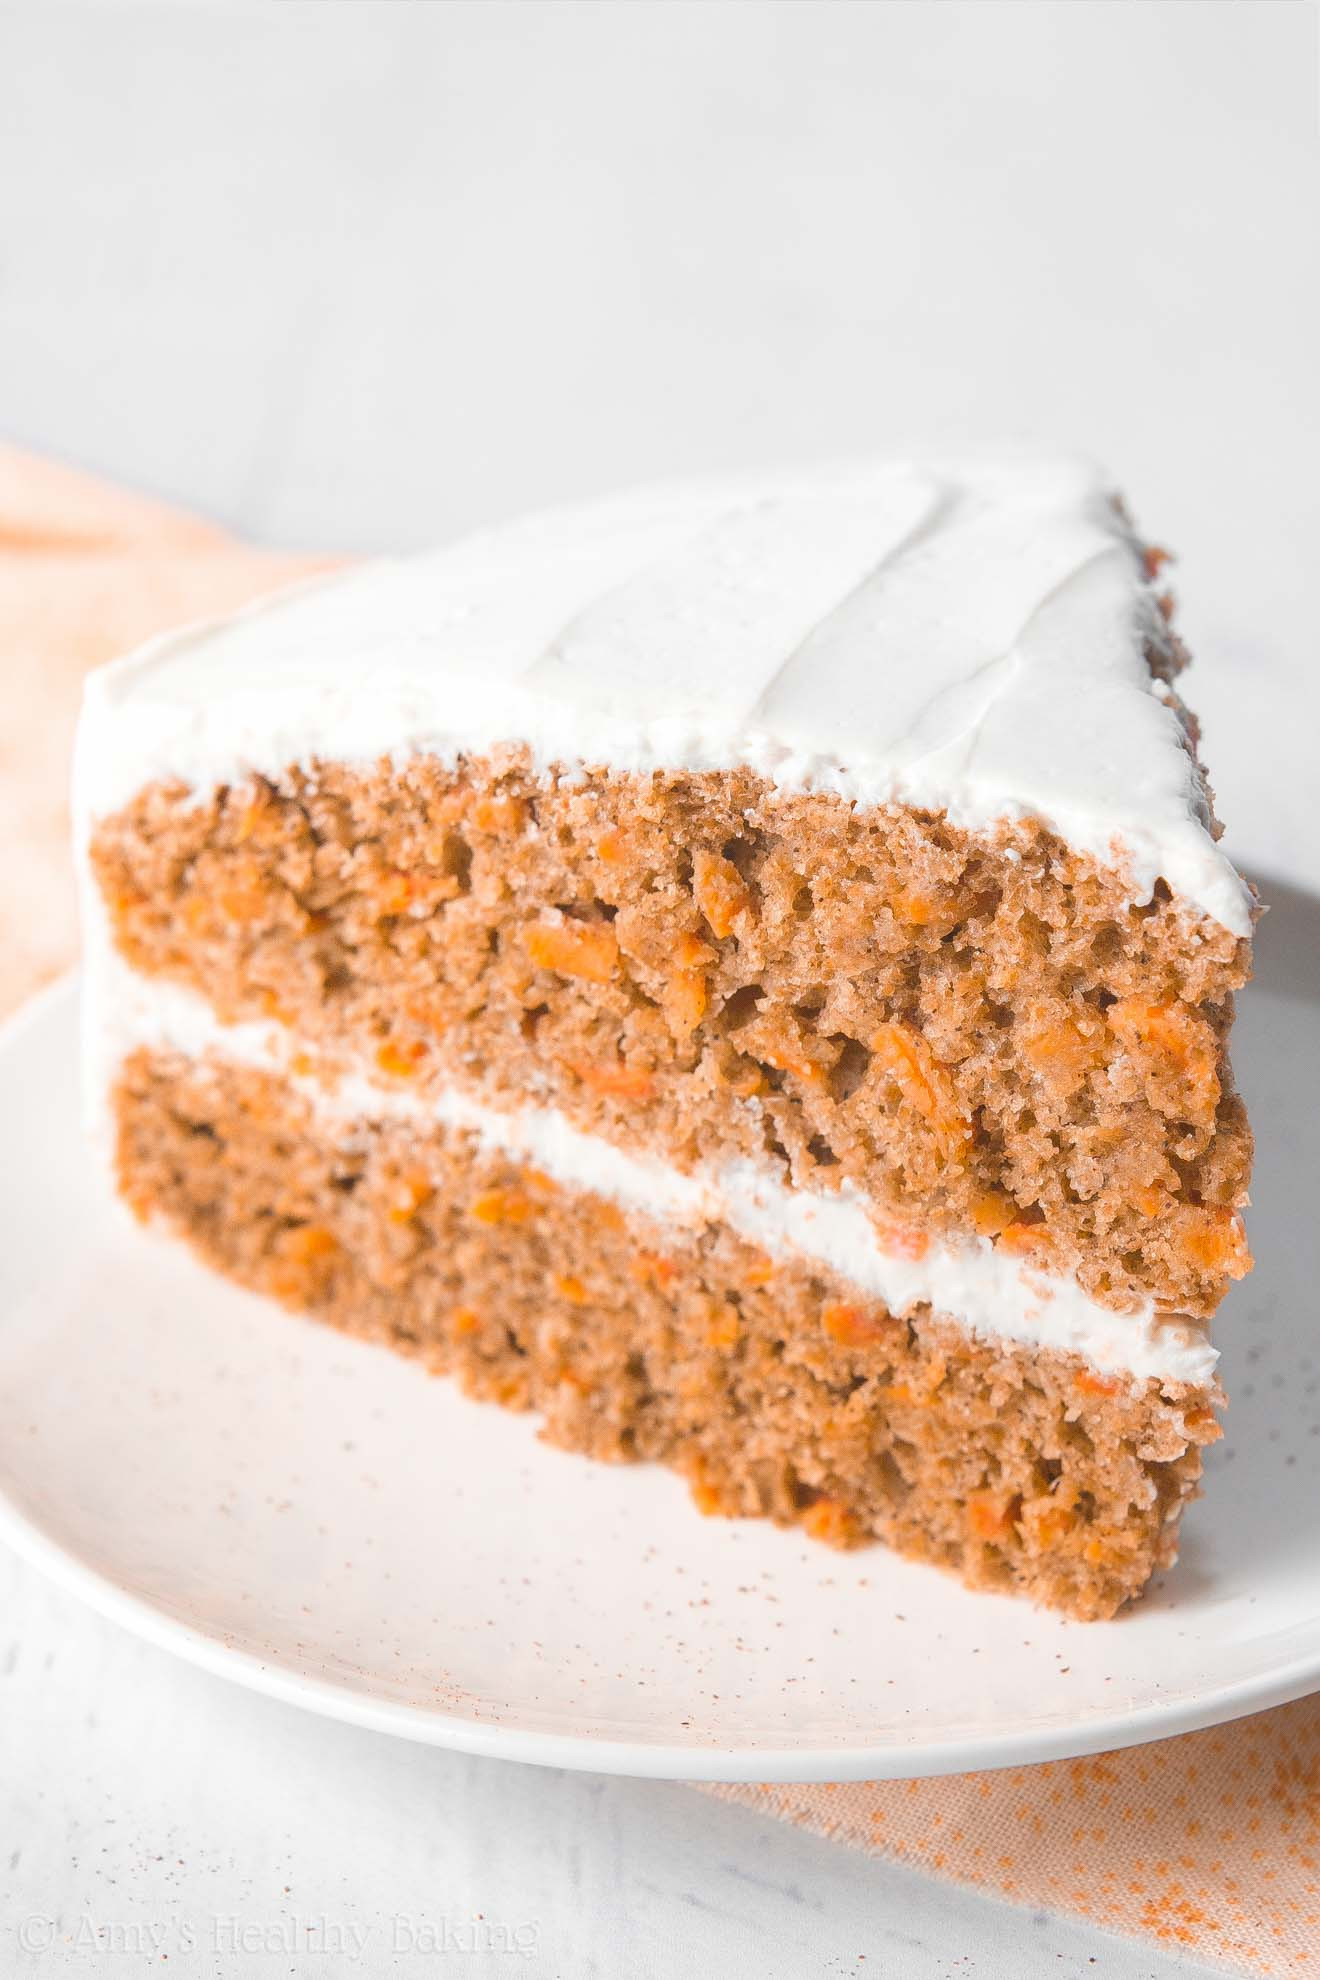 Best Healthy Carrot Cake Recipe  The Ultimate Healthy Carrot Cake With a Step by Step